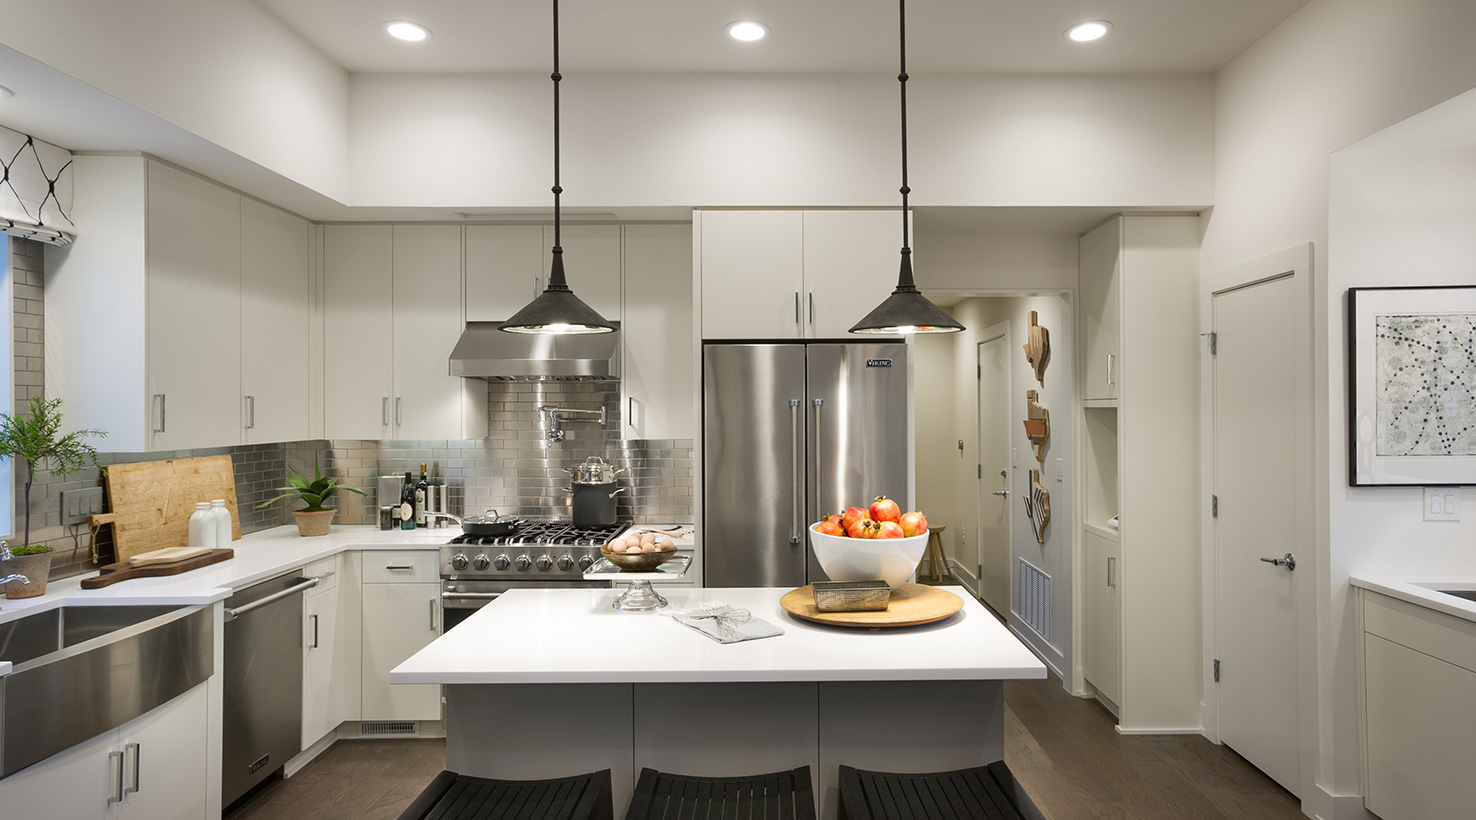 Dovetail Sw7018 The Hgtv 174 Smart Home 2015 Sponsored By Sherwin Williams